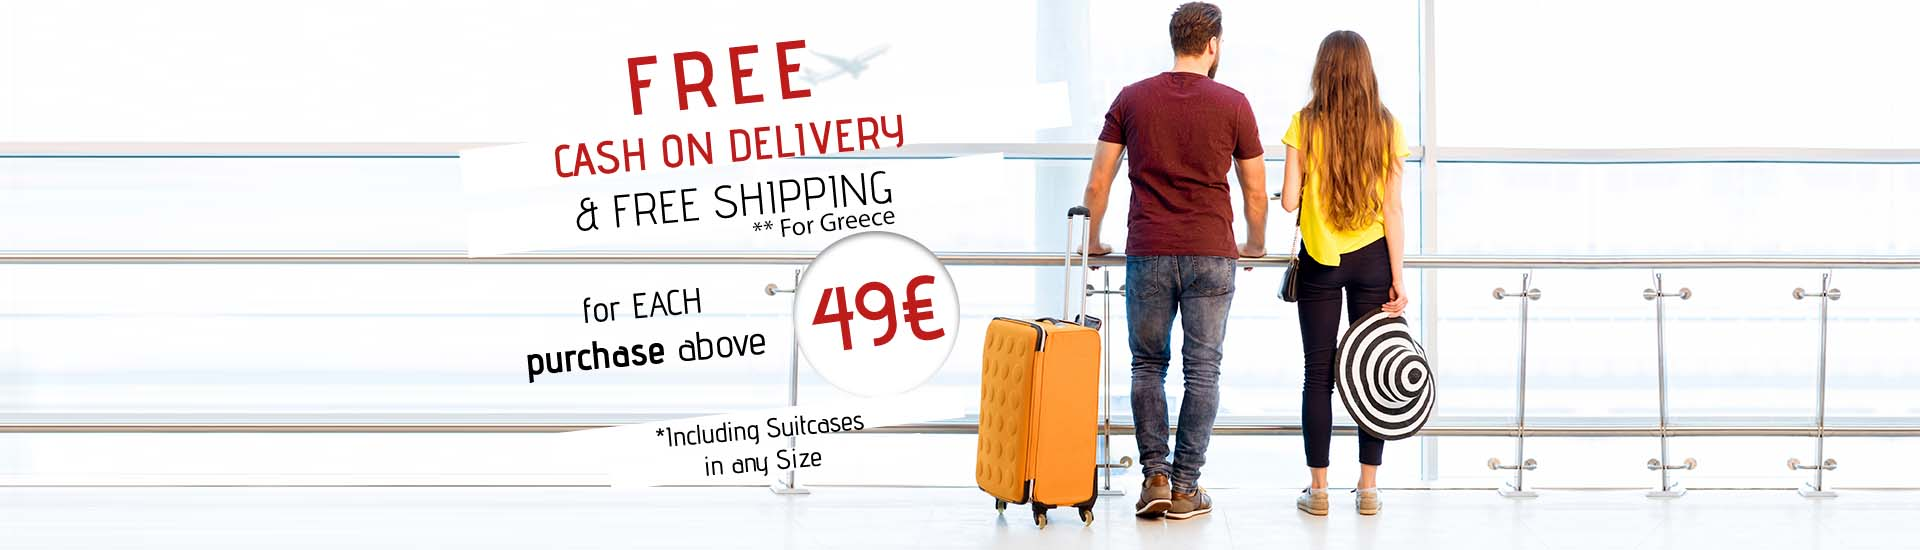 Free Shipping and cash on delivery